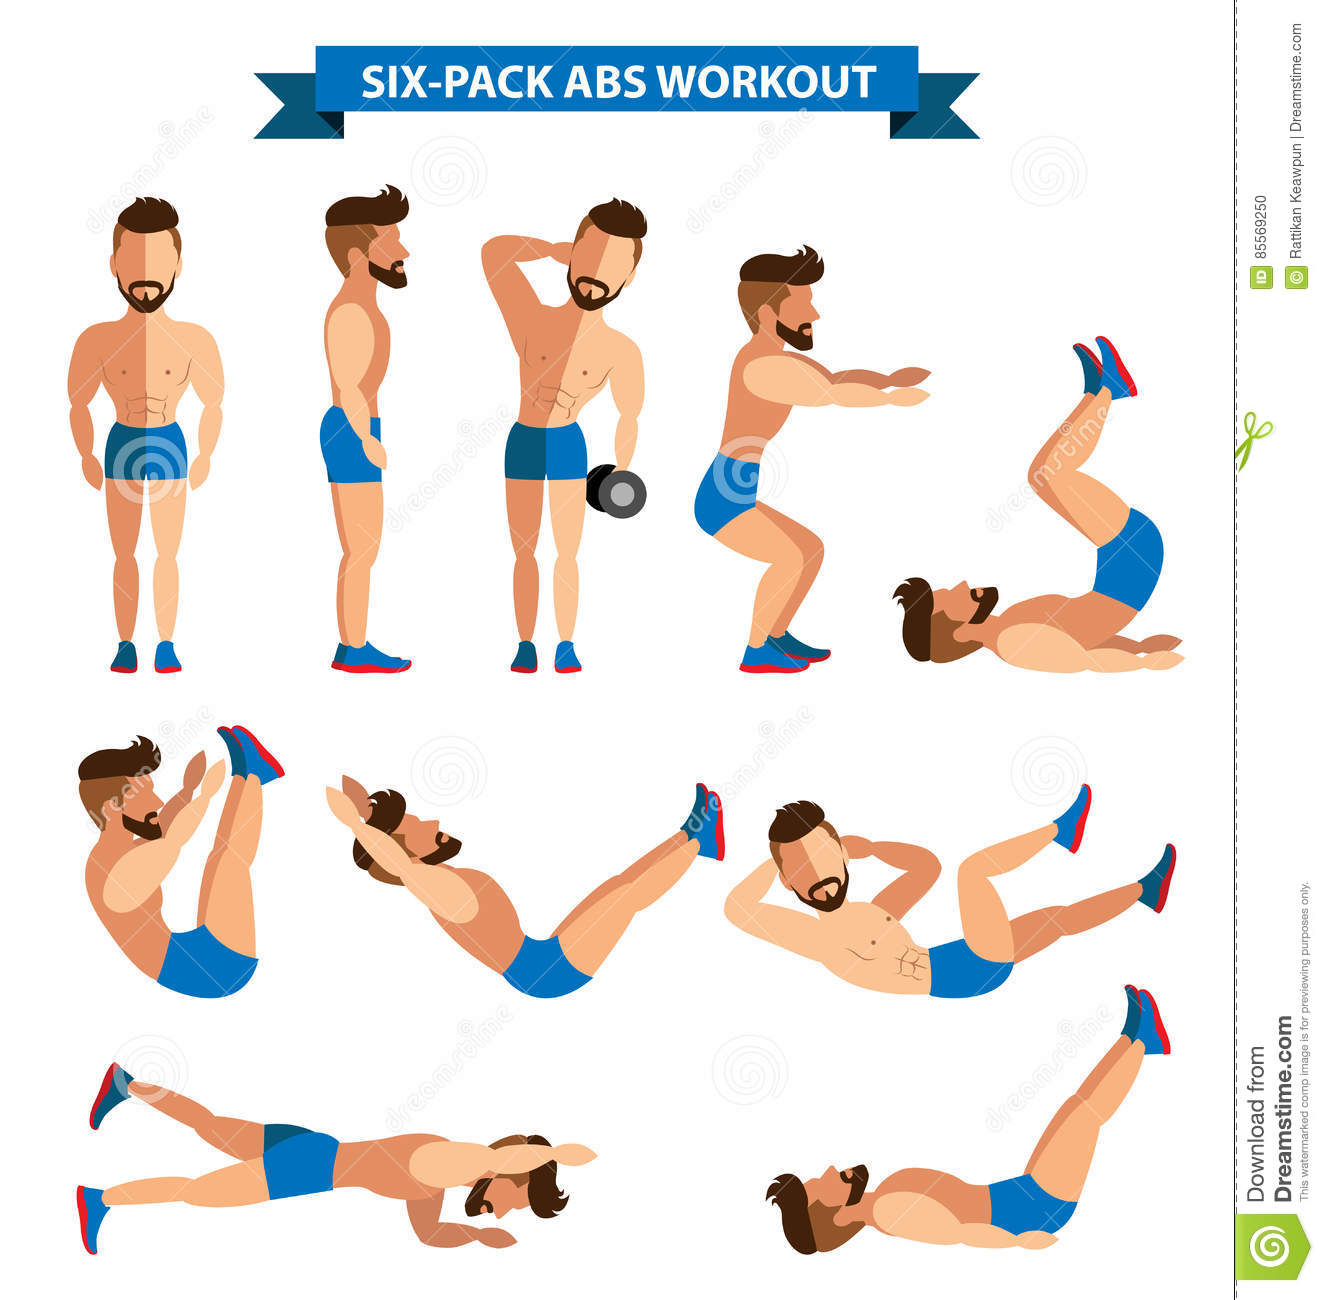 Six-Pack Abs Workout for men